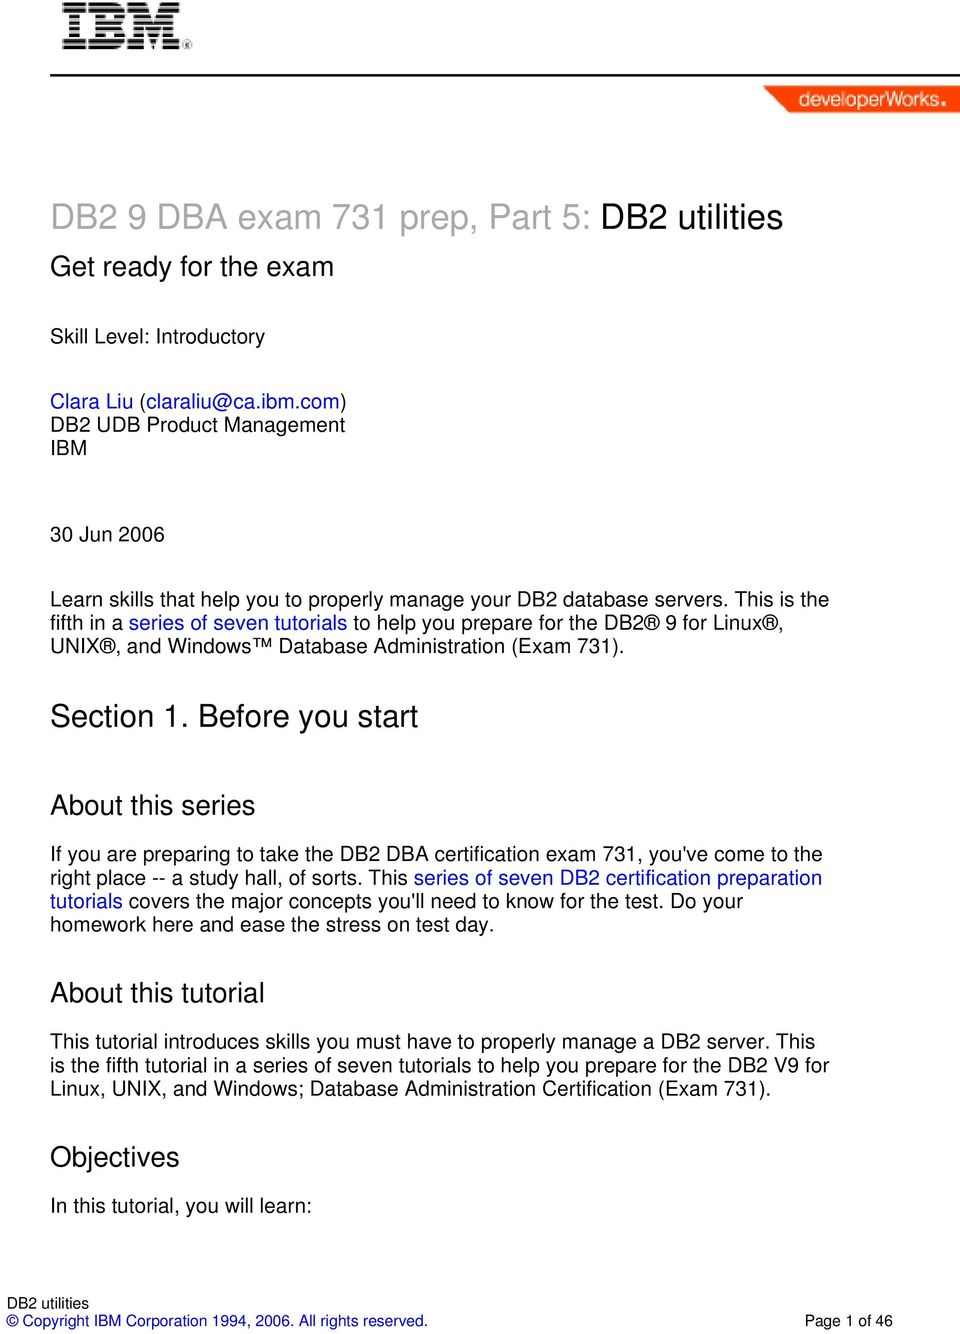 Db2 9 Dba Exam 731 Prep Part 5 Db2 Utilities Pdf